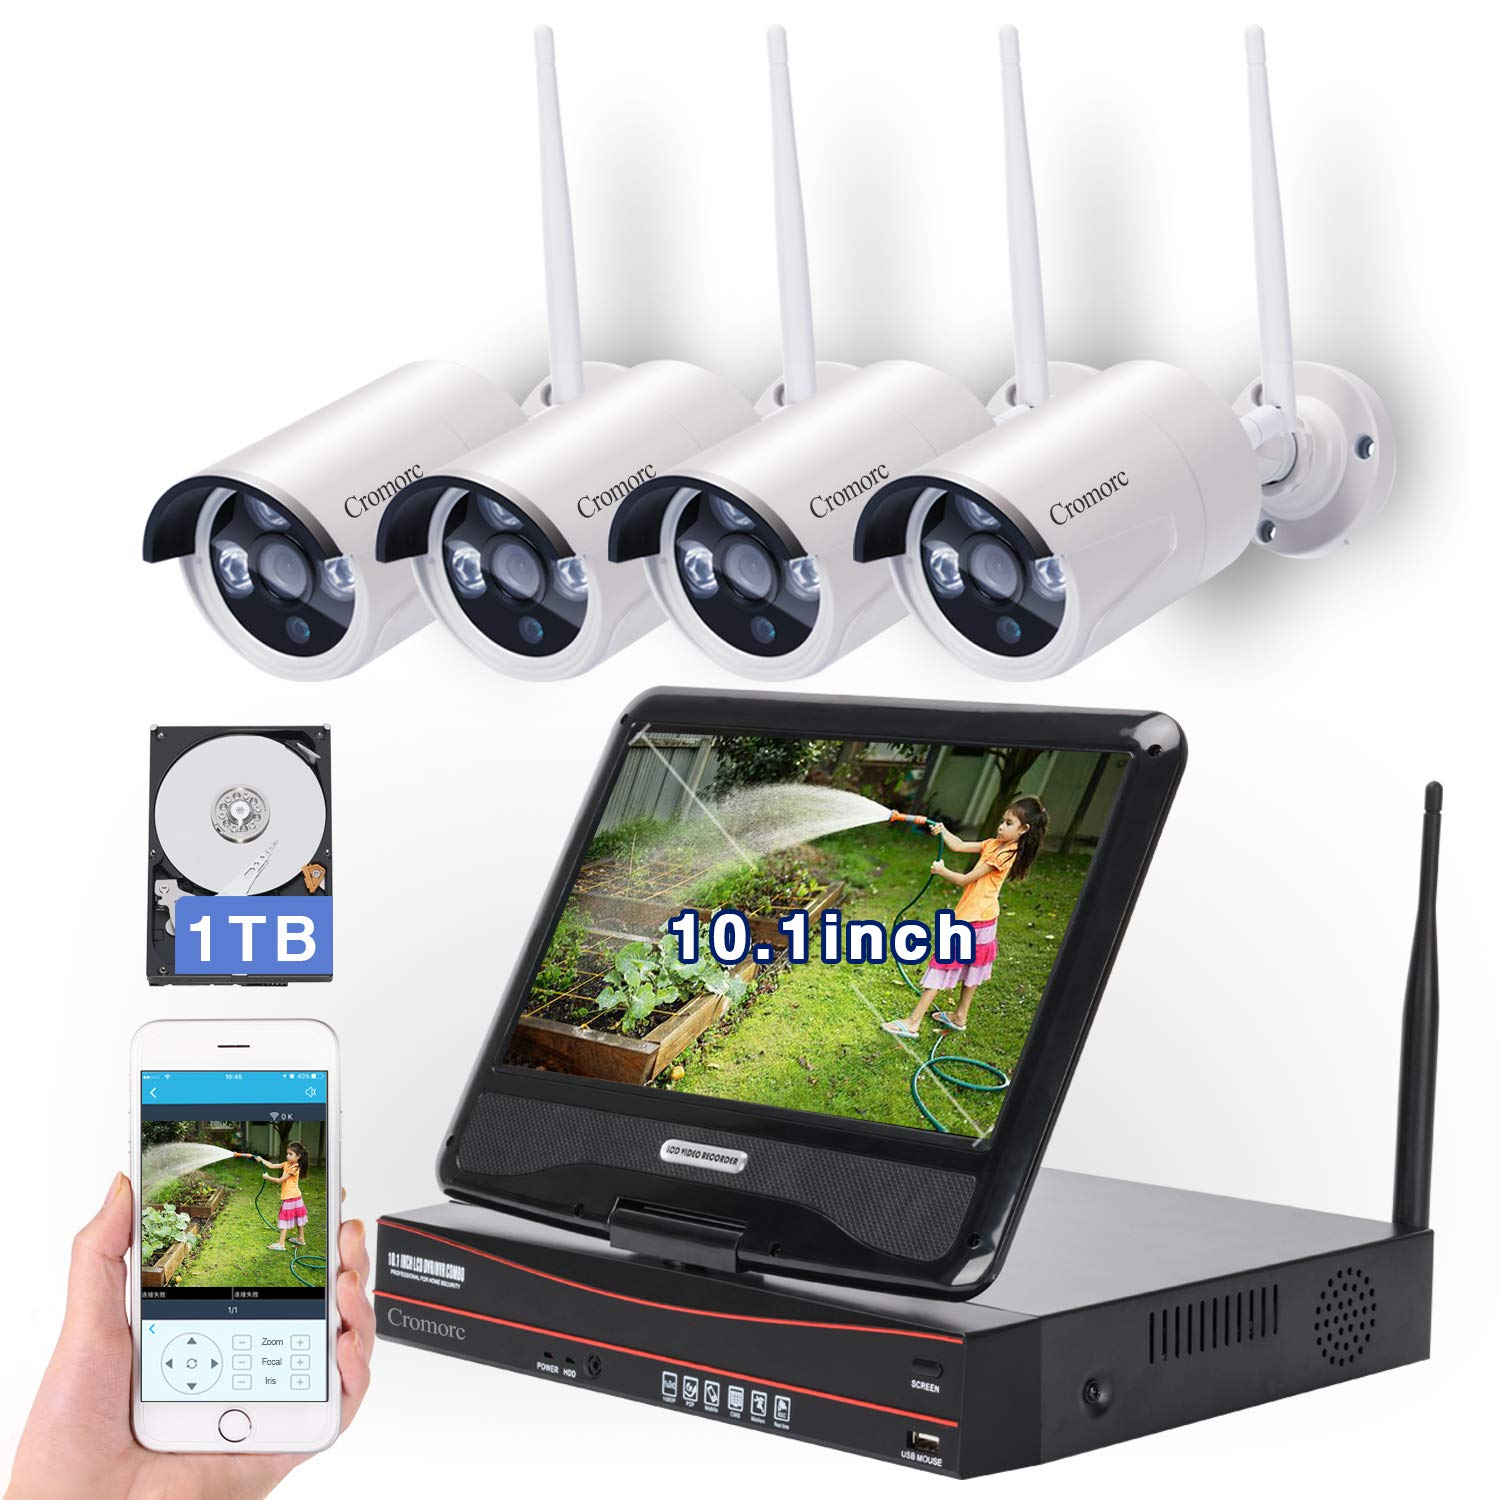 8CH,Expandable All in one with 10.1 inches Monitor Wireless Security Camera System, Home Business CCTV Surveillance 8CH 1080P NVR Kit, 4pcs 2MP 1080P Outdoor Night Vision IP Camera, 1TB Hard Drive